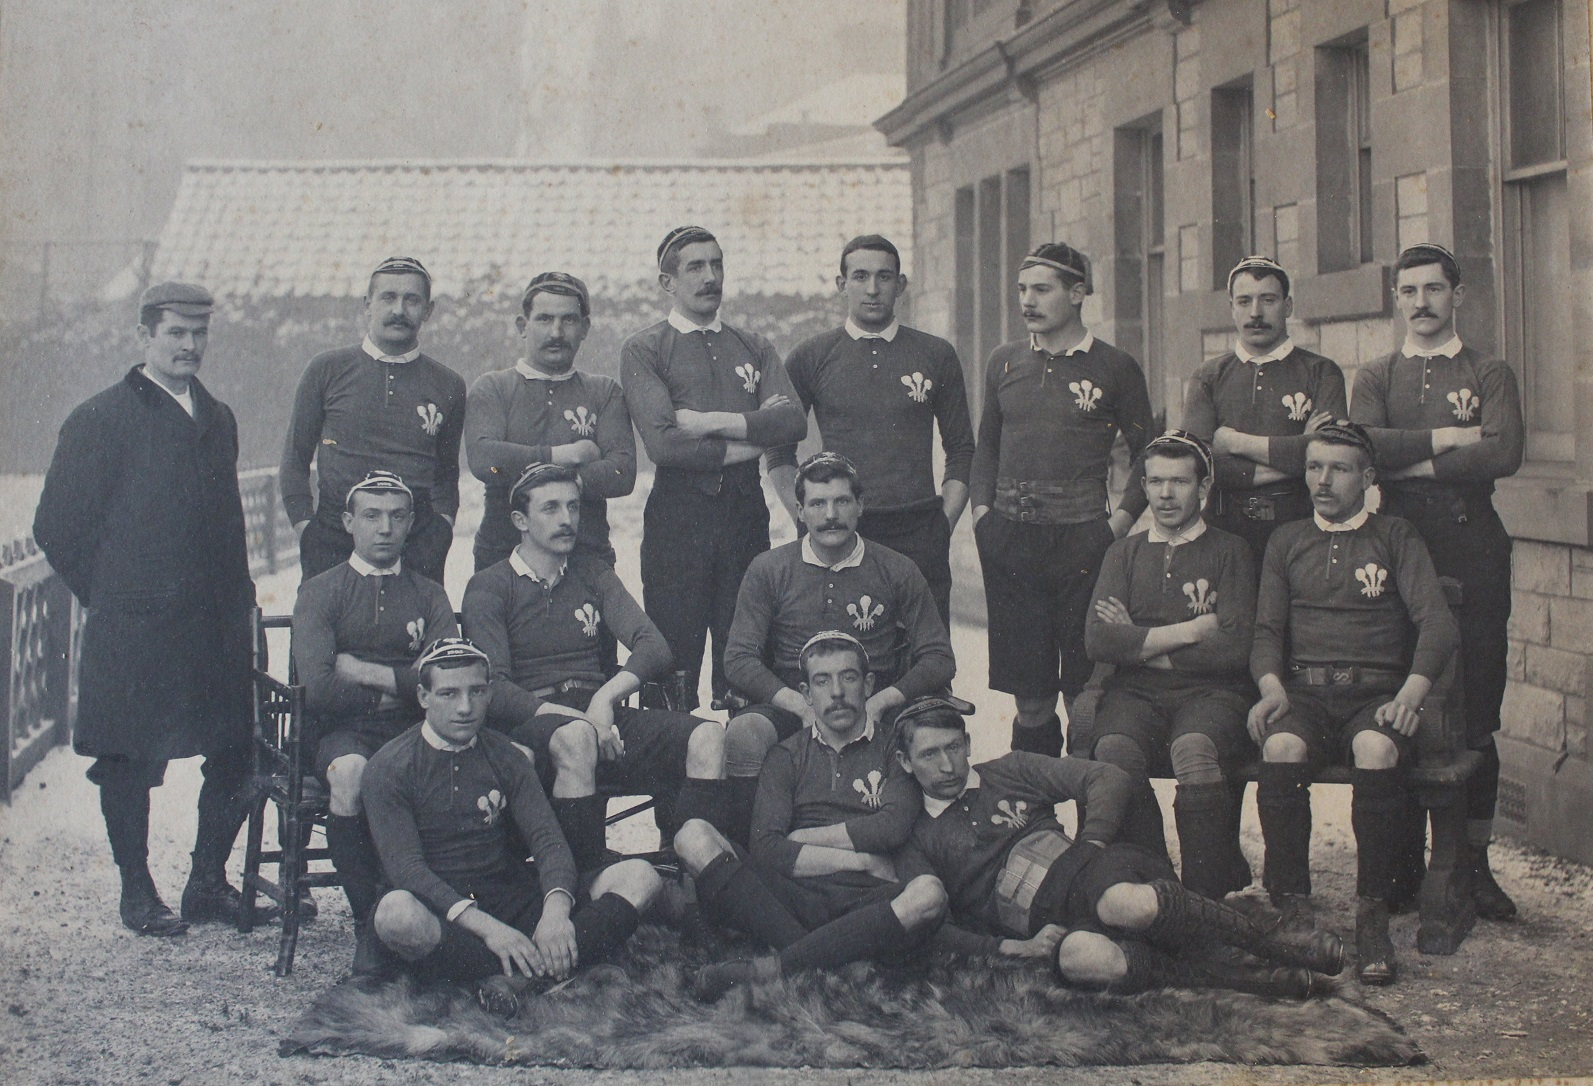 1895 Welsh Team vs Scotland (Raeburn Place) Rugby Memorabilia Society